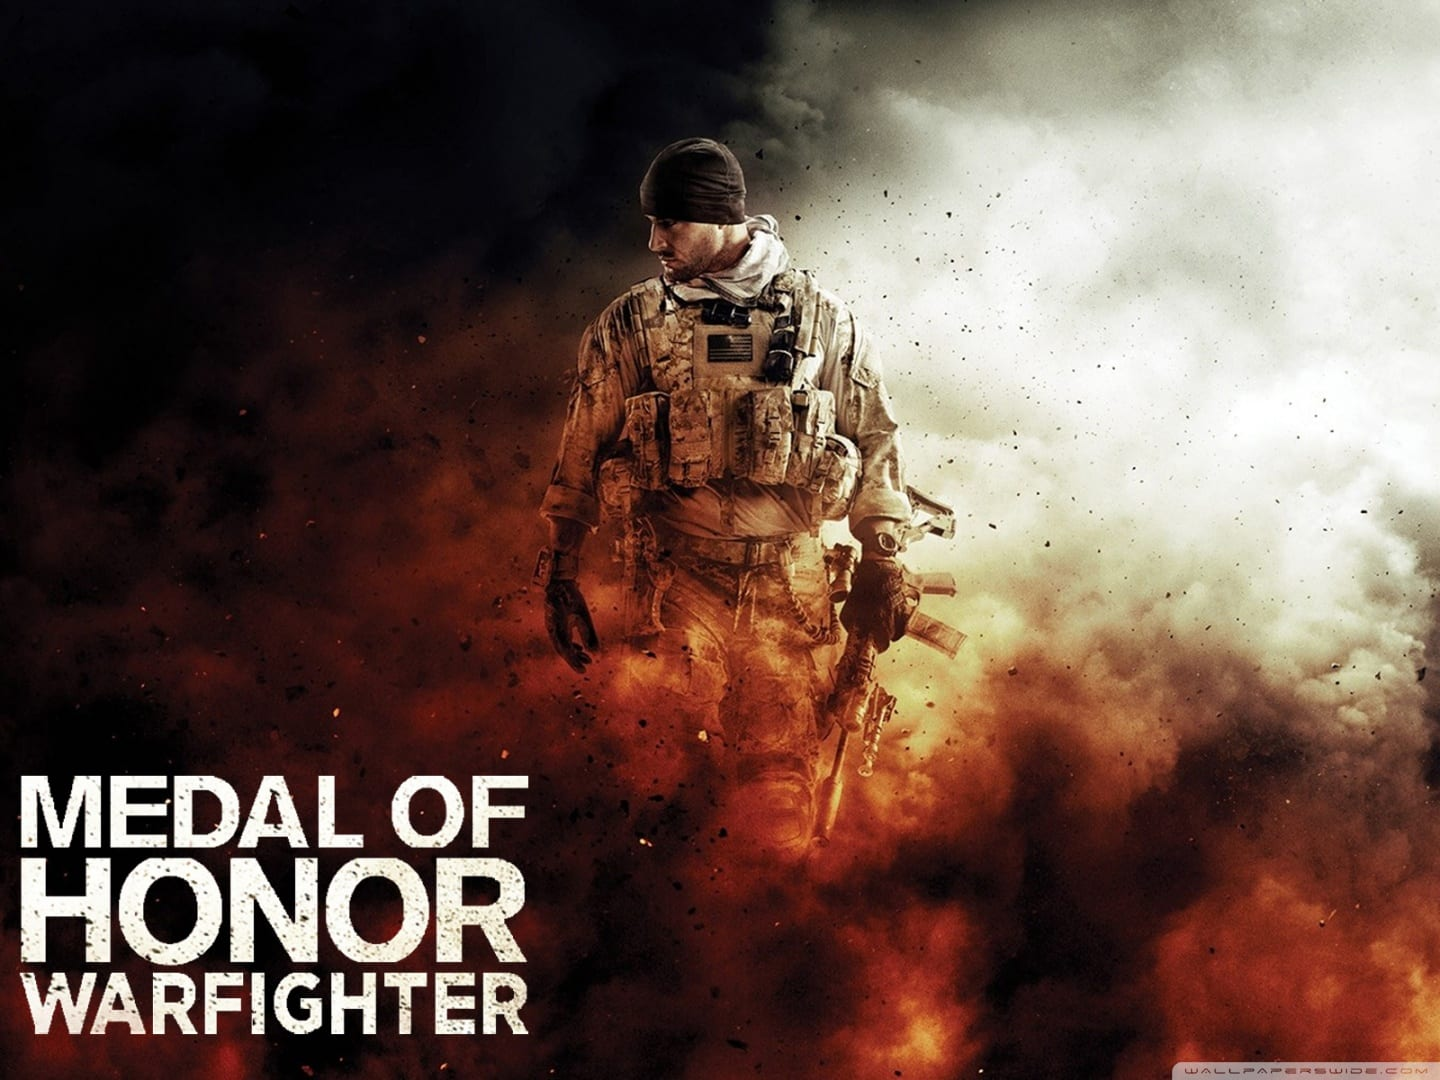 Medal of Honor - Warfighter review: The war on originality ...